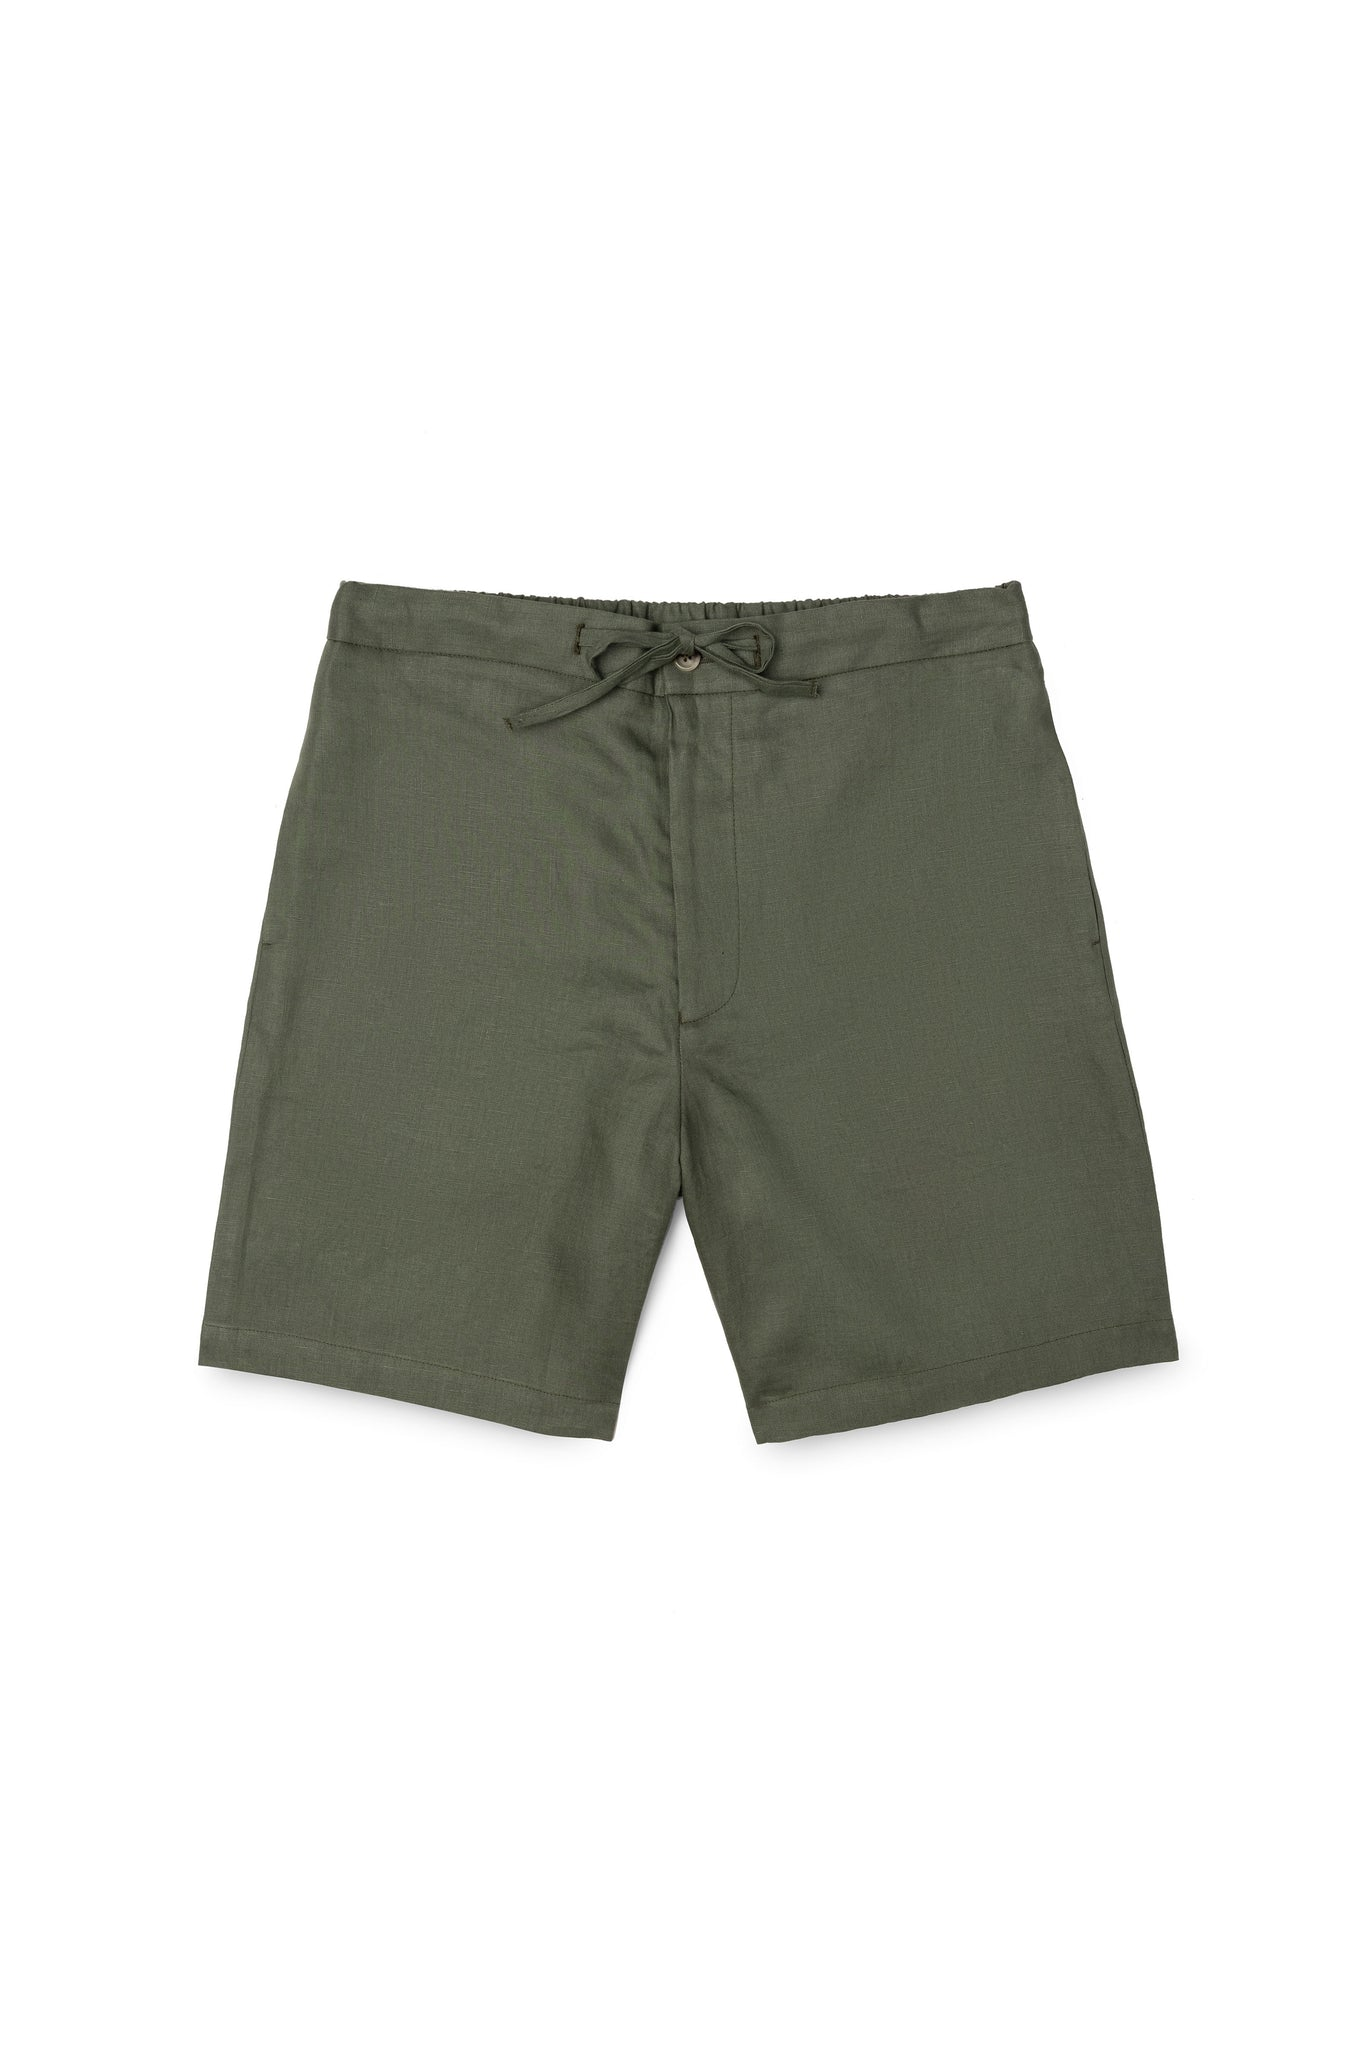 Army Green Linen Drawstring Shorts